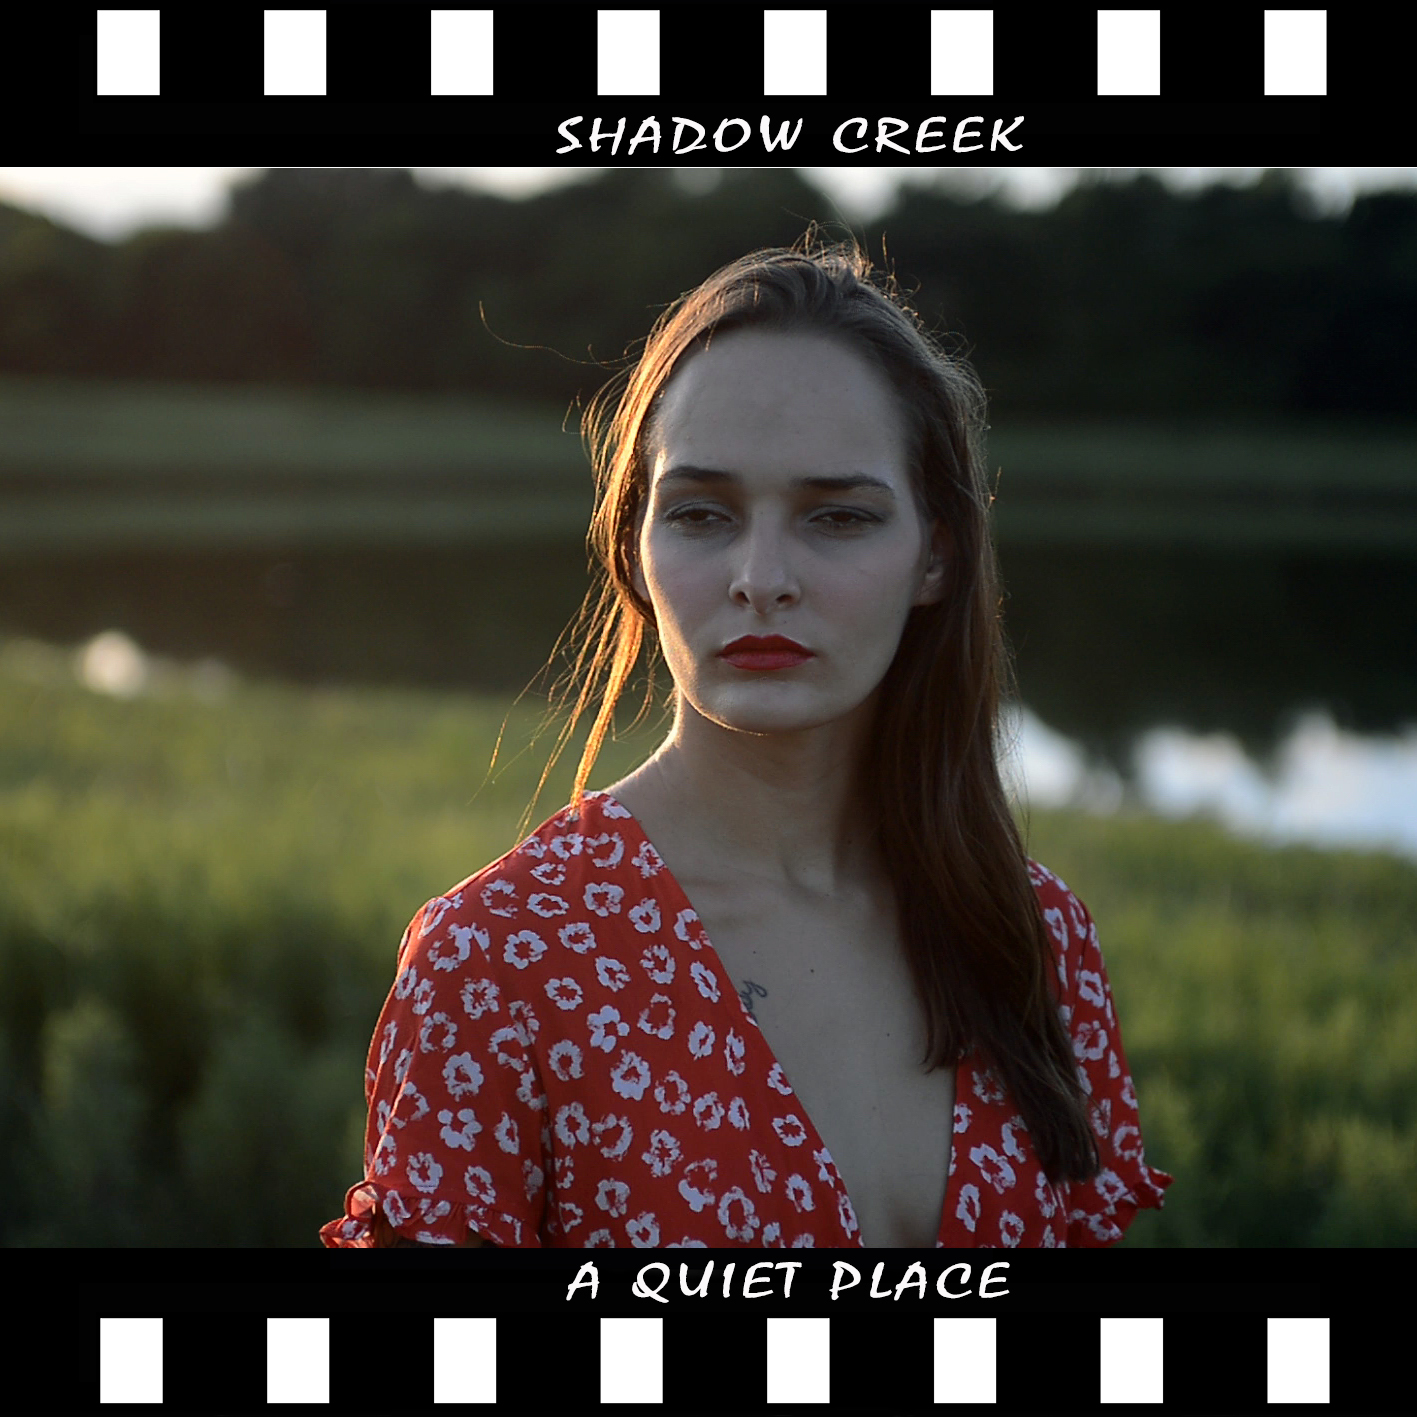 'A Quiet Place' is the opening song from the 'Shadow Creek' album Urban Decay.